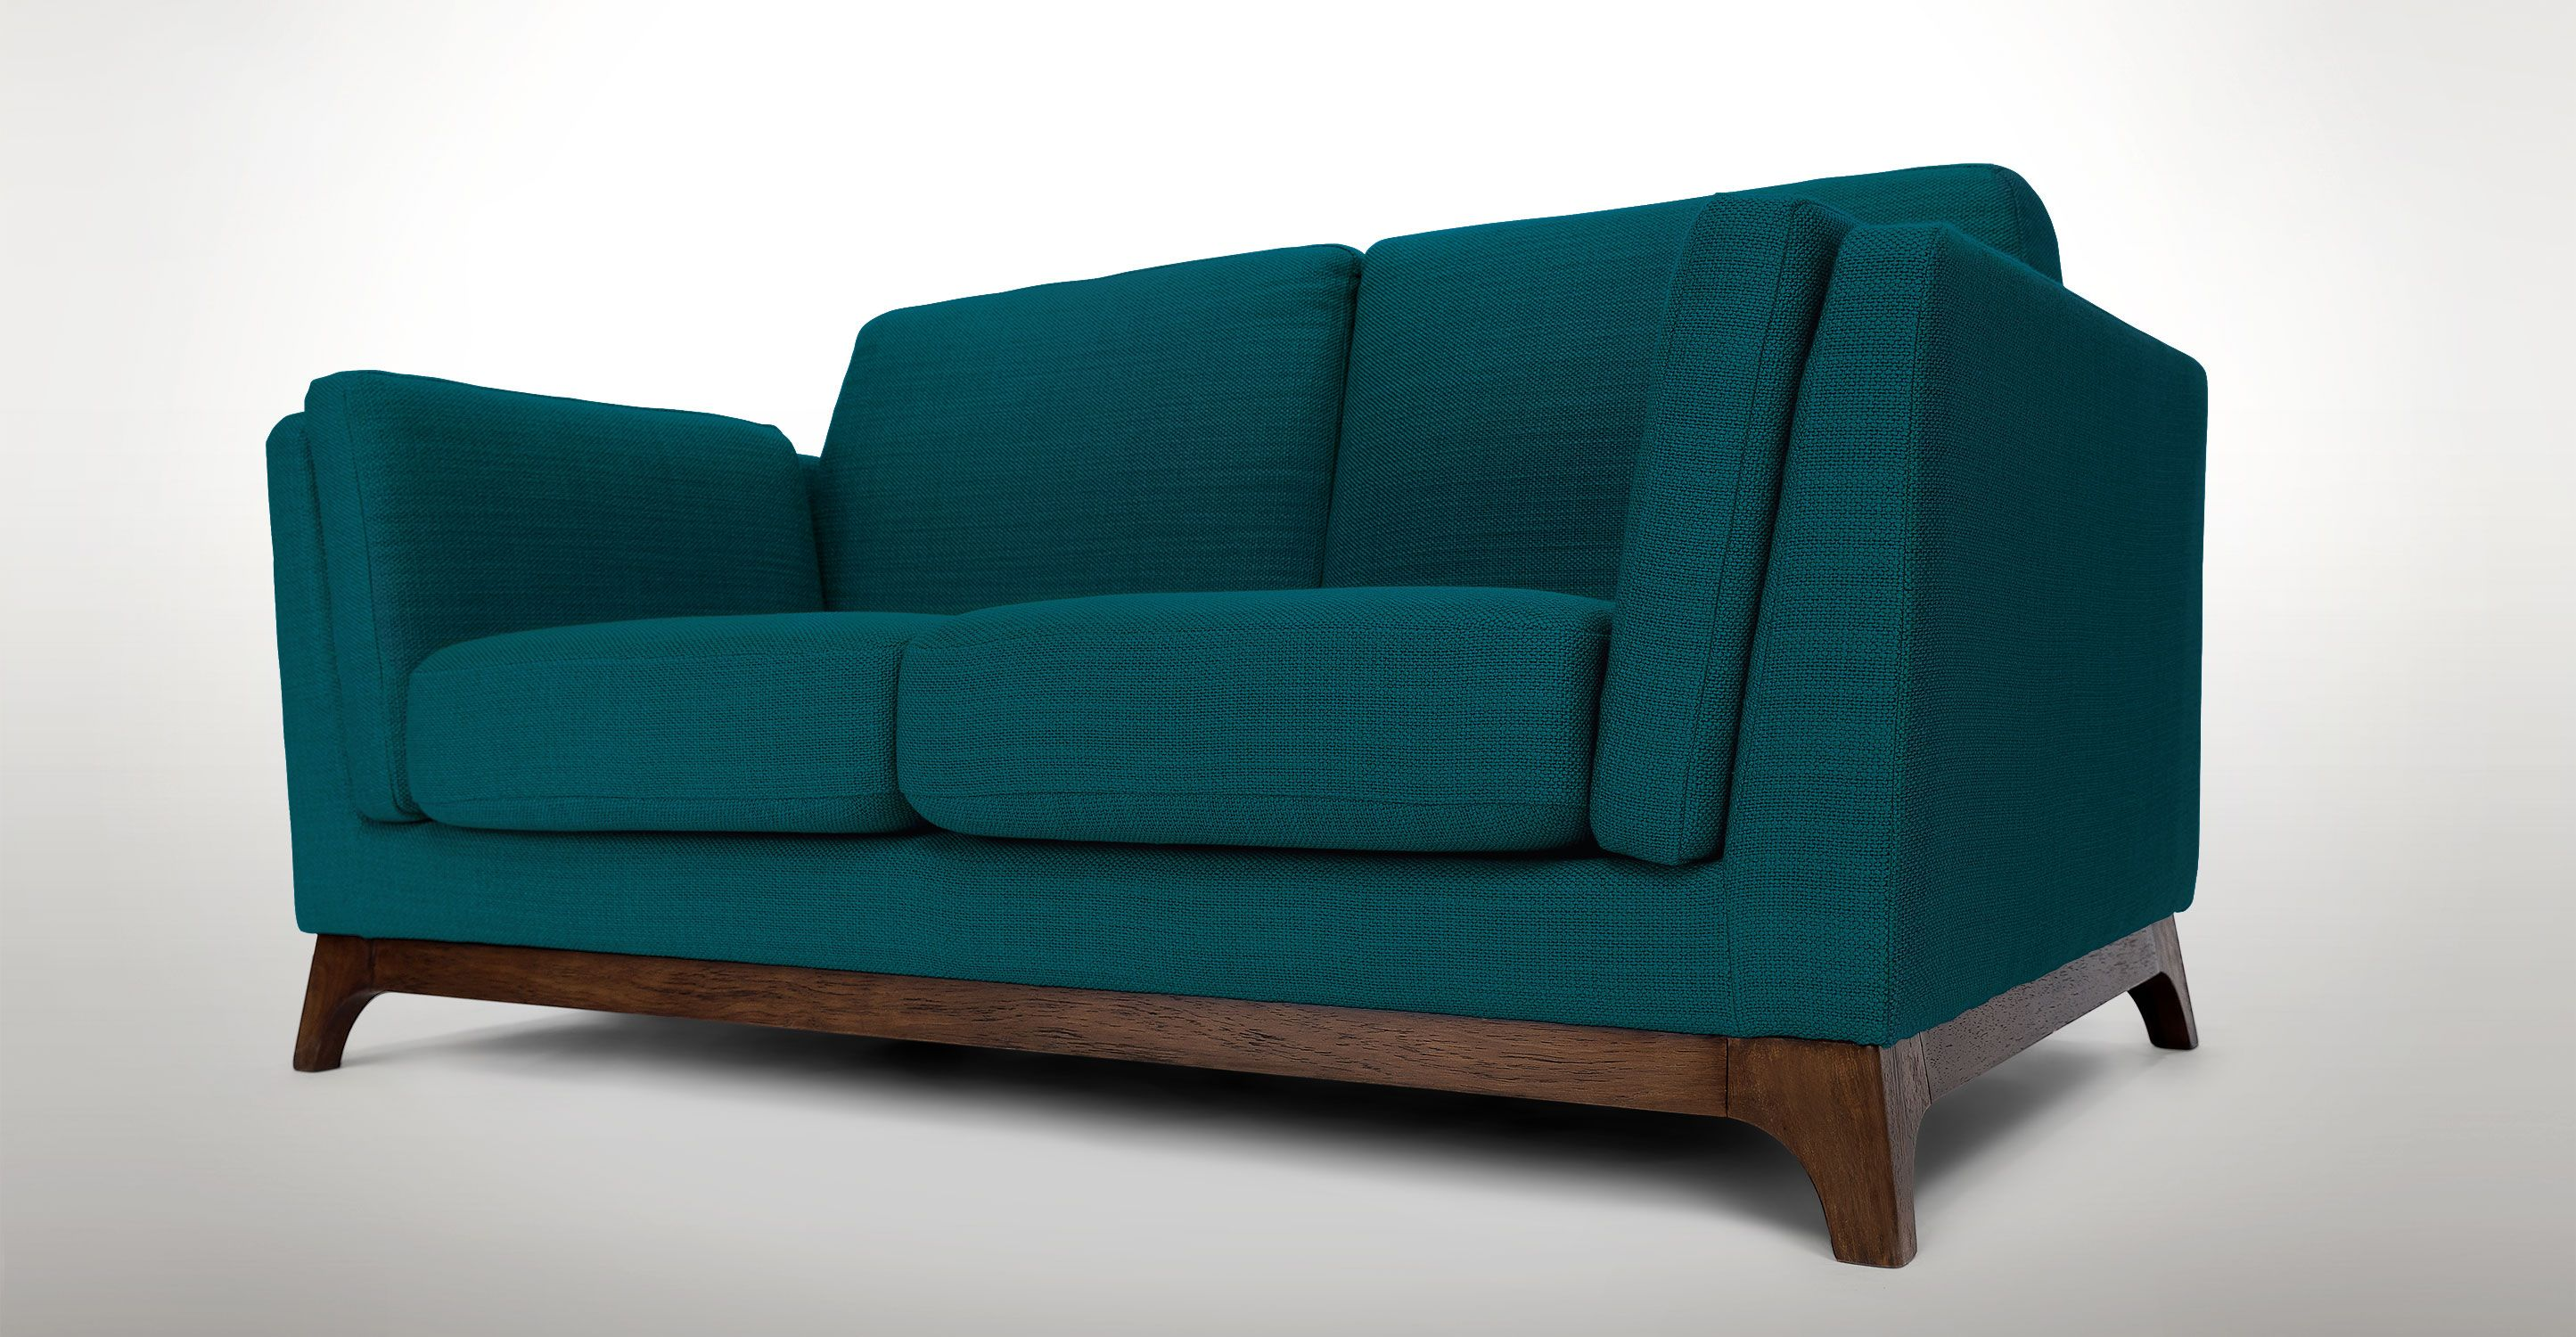 jamestown 2 piece sofa and loveseat group in gray low cost sets lagoon blue with solid wood legs article ceni